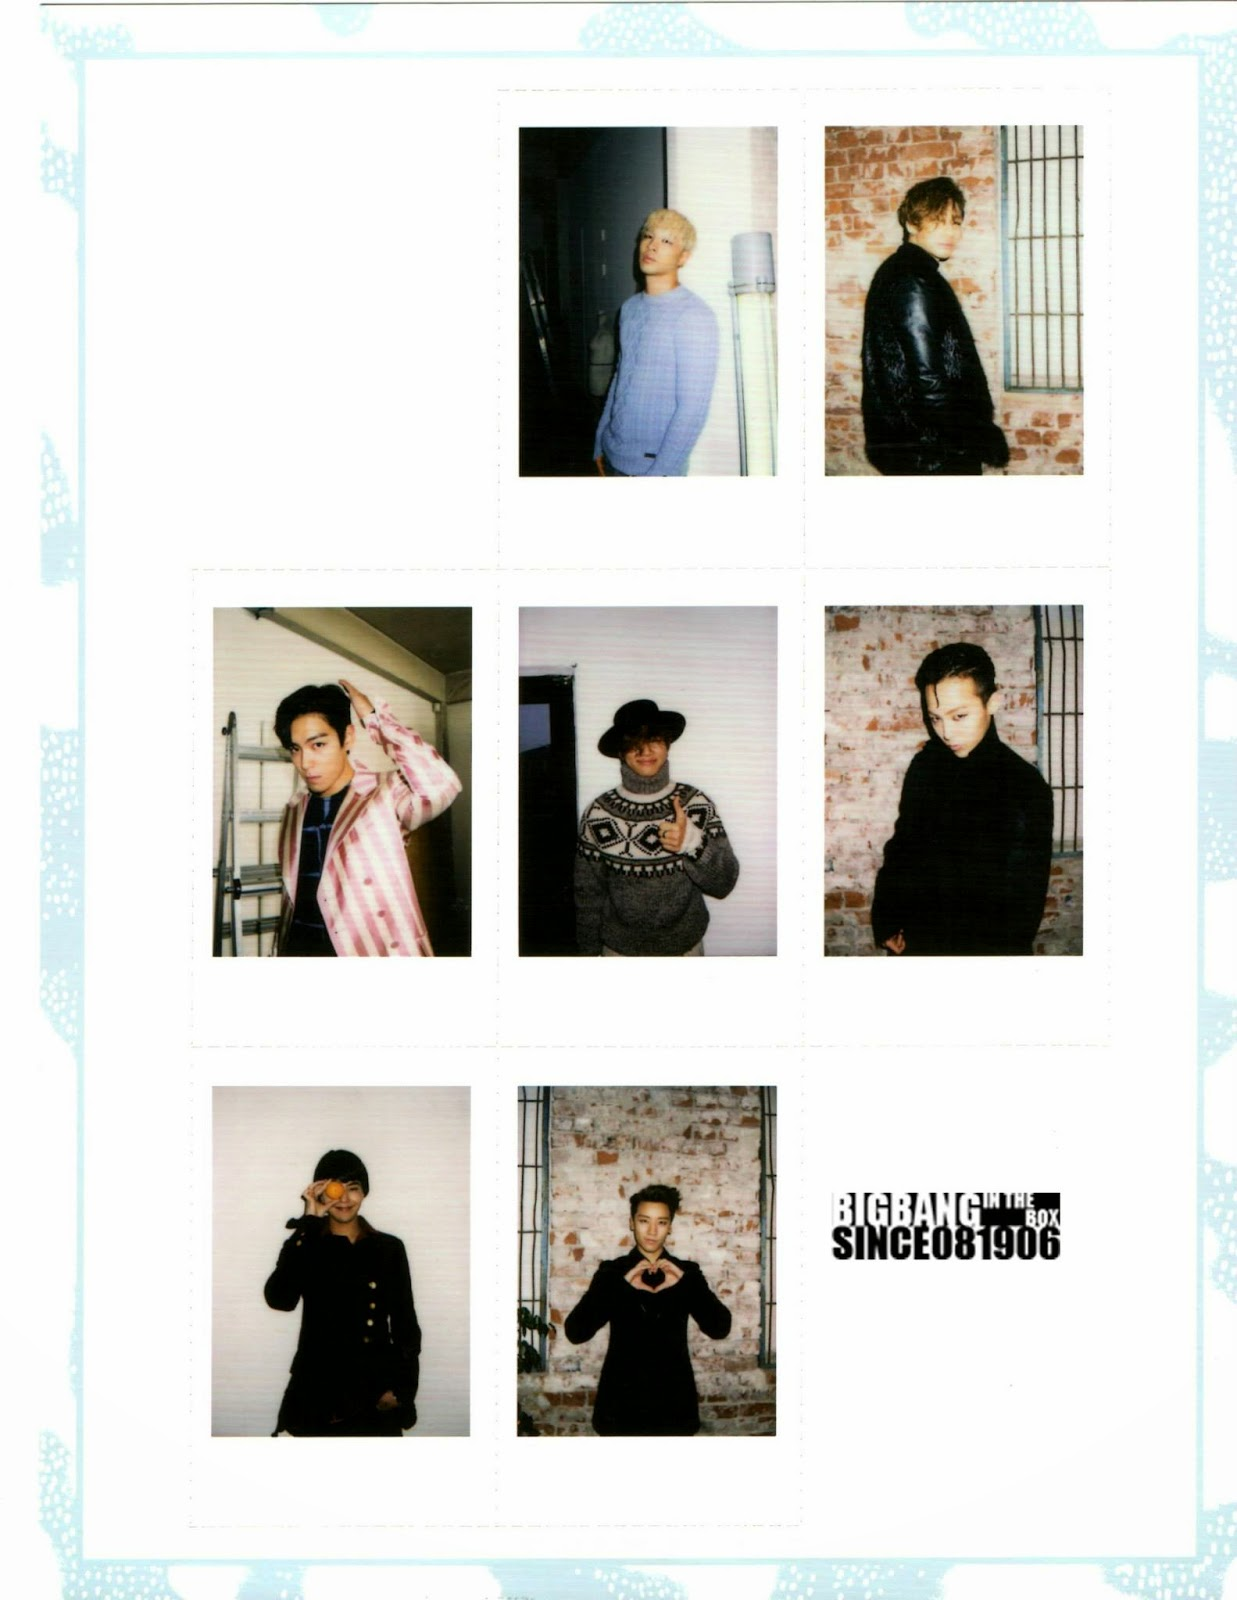 Scans: Big Bang's 2015 Welcoming Collection [PHOTOS]  Scans: Big Bang's 2015 Welcoming Collection [PHOTOS]  Scans: Big Bang's 2015 Welcoming Collection [PHOTOS]  Scans: Big Bang's 2015 Welcoming Collection [PHOTOS]  Scans: Big Bang's 2015 Welcoming Collection [PHOTOS]  Scans: Big Bang's 2015 Welcoming Collection [PHOTOS]  Scans: Big Bang's 2015 Welcoming Collection [PHOTOS]  Scans: Big Bang's 2015 Welcoming Collection [PHOTOS]  Scans: Big Bang's 2015 Welcoming Collection [PHOTOS]  Scans: Big Bang's 2015 Welcoming Collection [PHOTOS]  Scans: Big Bang's 2015 Welcoming Collection [PHOTOS]  Scans: Big Bang's 2015 Welcoming Collection [PHOTOS]  Scans: Big Bang's 2015 Welcoming Collection [PHOTOS]  Scans: Big Bang's 2015 Welcoming Collection [PHOTOS]  Scans: Big Bang's 2015 Welcoming Collection [PHOTOS]  Scans: Big Bang's 2015 Welcoming Collection [PHOTOS]  Scans: Big Bang's 2015 Welcoming Collection [PHOTOS]  Scans: Big Bang's 2015 Welcoming Collection [PHOTOS]  Scans: Big Bang's 2015 Welcoming Collection [PHOTOS]  Scans: Big Bang's 2015 Welcoming Collection [PHOTOS]  Scans: Big Bang's 2015 Welcoming Collection [PHOTOS]  Scans: Big Bang's 2015 Welcoming Collection [PHOTOS]  Scans: Big Bang's 2015 Welcoming Collection [PHOTOS]  Scans: Big Bang's 2015 Welcoming Collection [PHOTOS]  Scans: Big Bang's 2015 Welcoming Collection [PHOTOS]  Scans: Big Bang's 2015 Welcoming Collection [PHOTOS]  Scans: Big Bang's 2015 Welcoming Collection [PHOTOS]  Scans: Big Bang's 2015 Welcoming Collection [PHOTOS]  Scans: Big Bang's 2015 Welcoming Collection [PHOTOS]  Scans: Big Bang's 2015 Welcoming Collection [PHOTOS]  Scans: Big Bang's 2015 Welcoming Collection [PHOTOS]  Scans: Big Bang's 2015 Welcoming Collection [PHOTOS]  Scans: Big Bang's 2015 Welcoming Collection [PHOTOS]  Scans: Big Bang's 2015 Welcoming Collection [PHOTOS]  Scans: Big Bang's 2015 Welcoming Collection [PHOTOS]  Scans: Big Bang's 2015 Welcoming Collection [PHOTOS]  Scans: Big Bang's 2015 Welcoming Collection [PHOTOS]  Scans: Big Bang's 2015 Welcoming Collection [PHOTOS]  Scans: Big Bang's 2015 Welcoming Collection [PHOTOS]